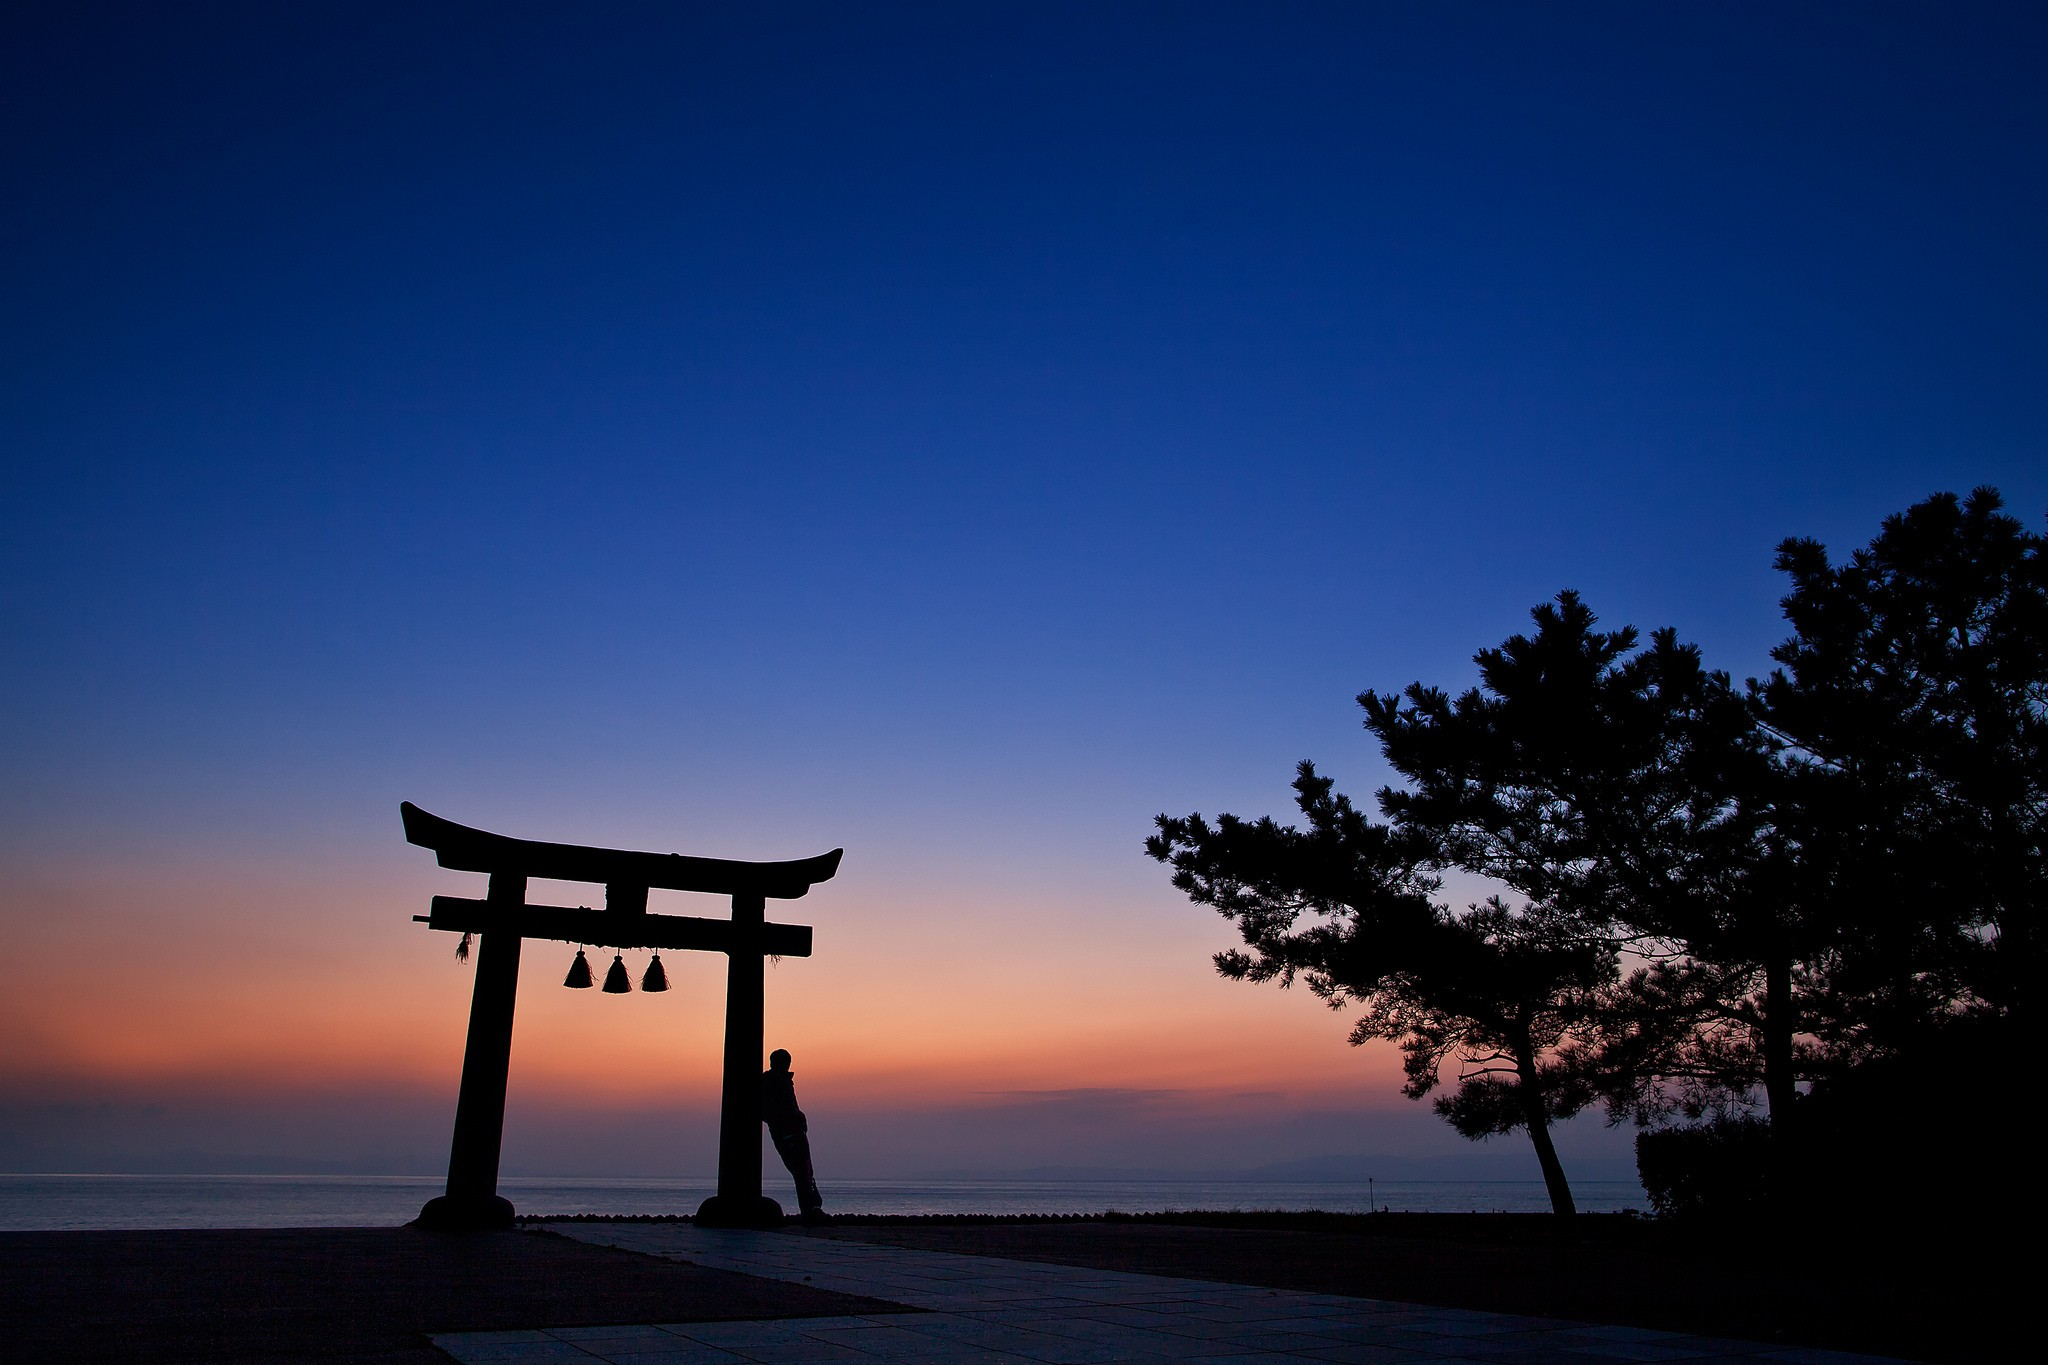 General 2048x1365 nature landscape torii Japan Asia clear sky sunset trees men silhouette sea blue bell calm